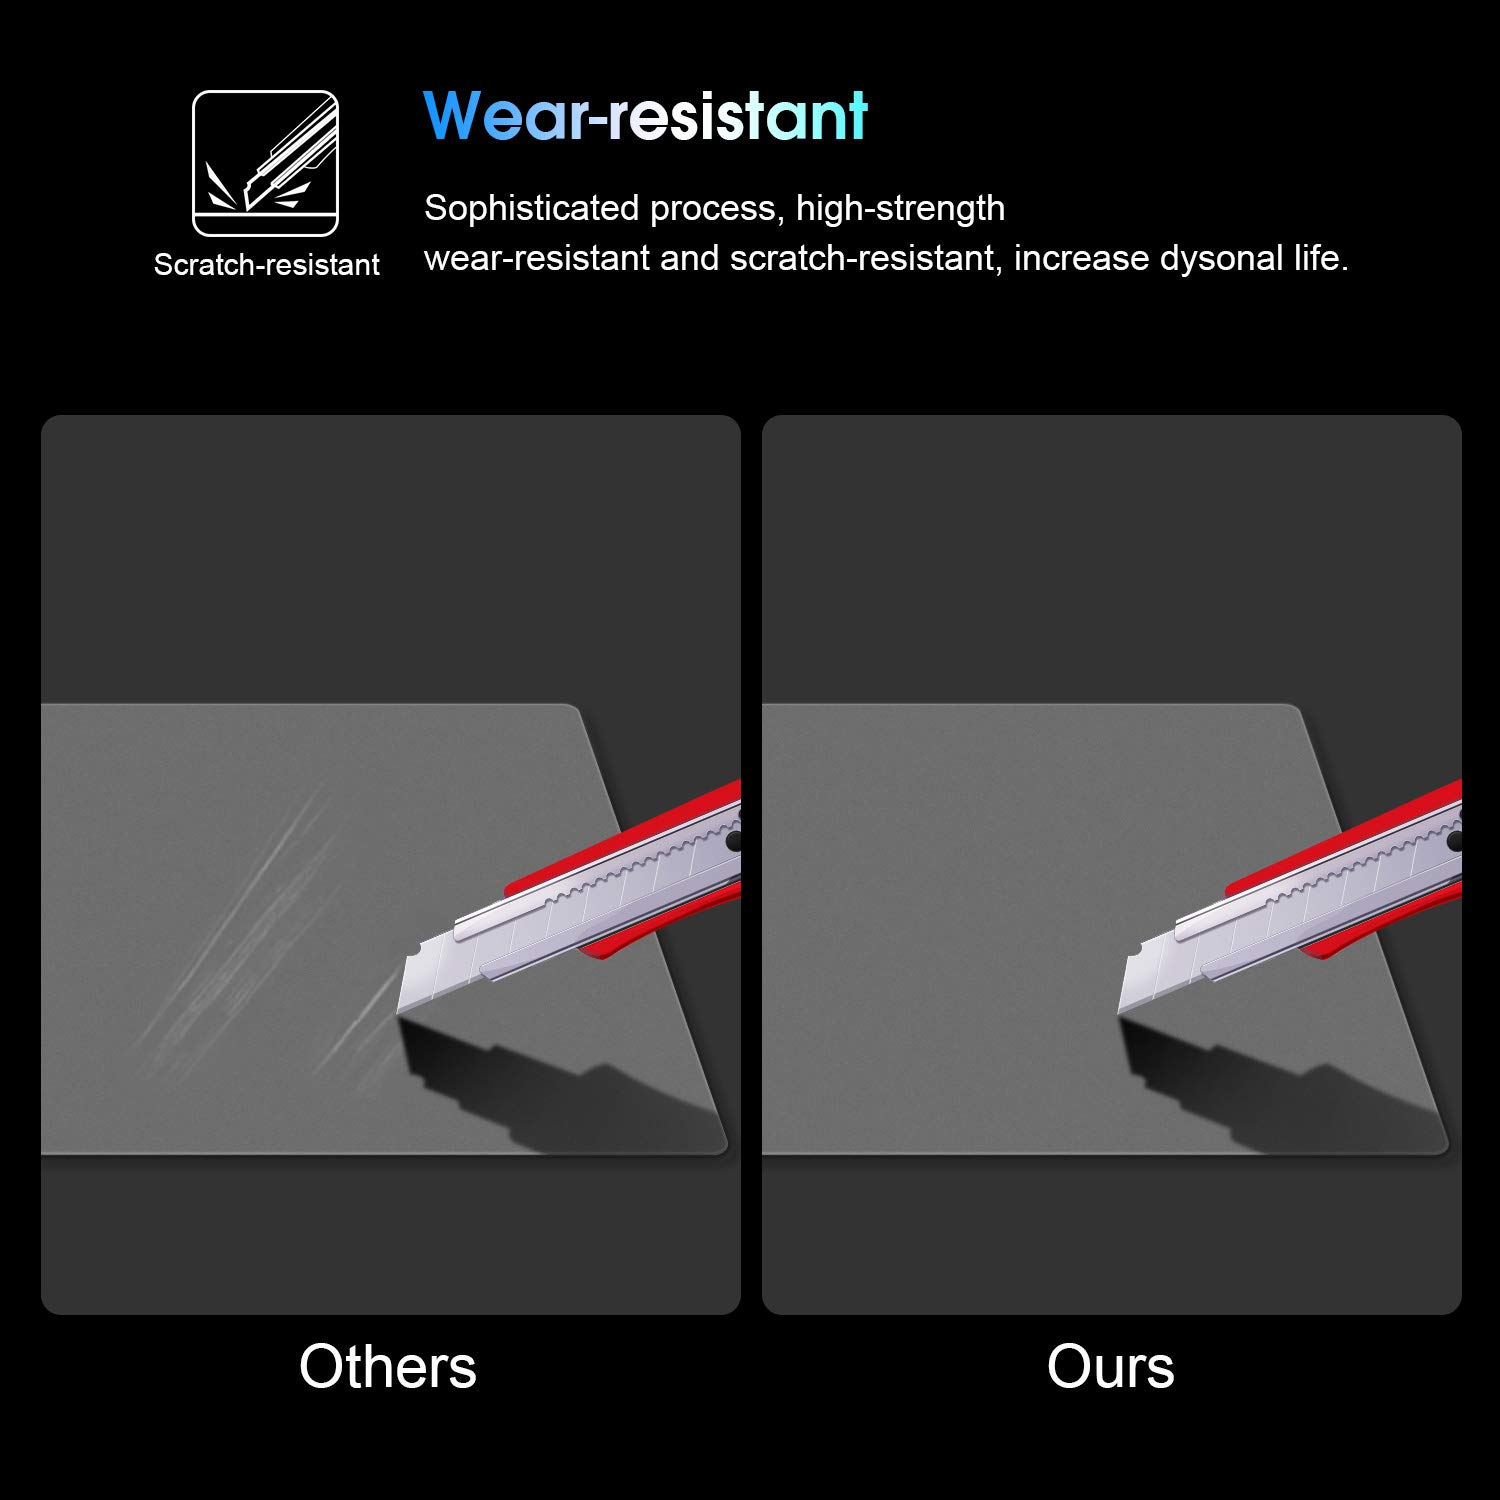 17 9H Anti-Scratch and Shock Resistant Anti-Glare//Anti-Fingerprint OLAIKE Screen Protector for Tesla Model S/&X Center Control High Definition Vision Car Navigation Tempered Glass Screen Protector